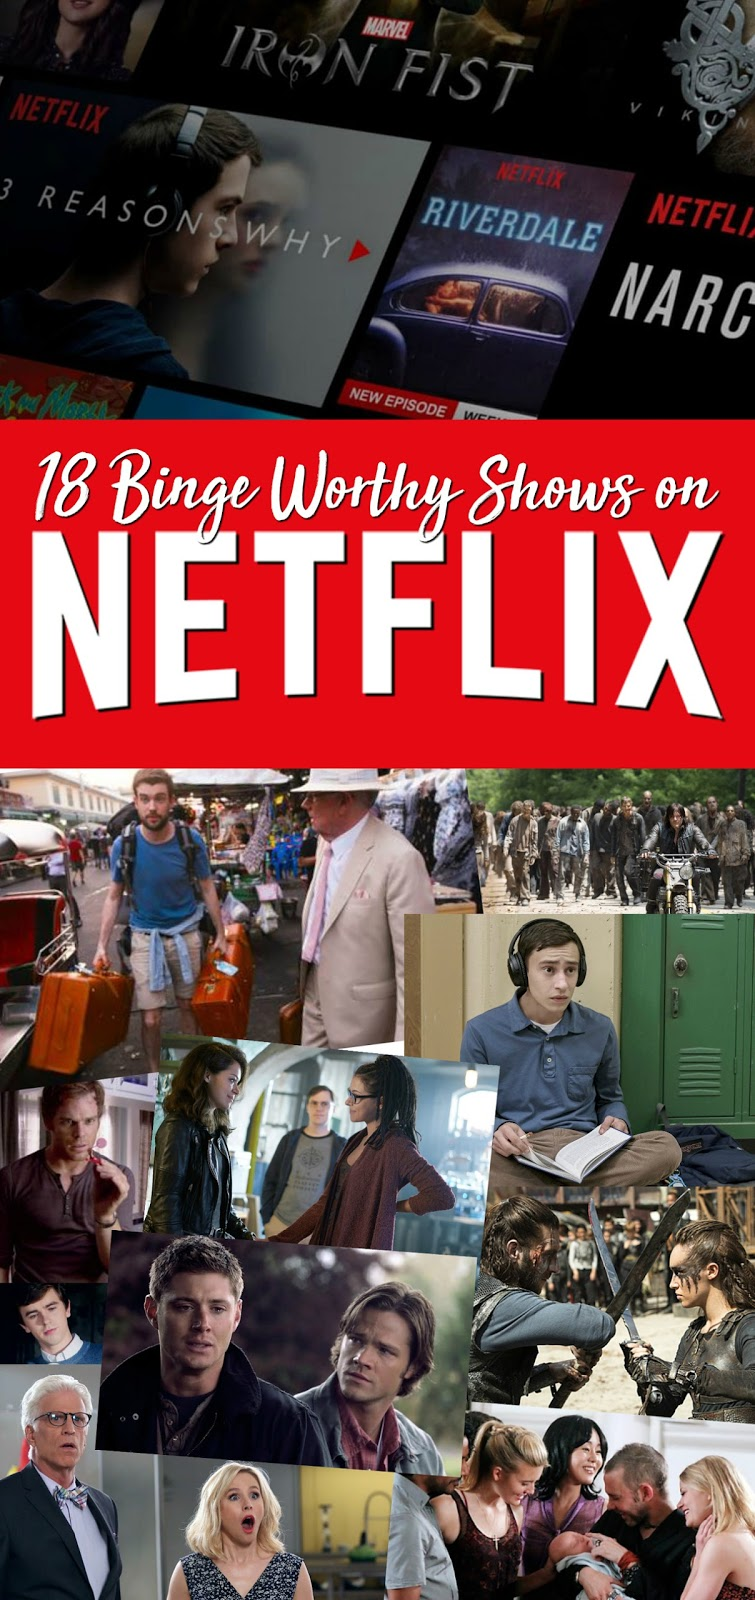 Looking for the next TV series to binge watch on Netflix? Check out list of the Top 18 Binge Worthy TV Series on Netflix - including fan favorites like Supernatural, The Walking Dead, Dexter and some little known shows you will find yourself totally hooked on! Includes recommendations for Australian Netflix so no one has to miss out!